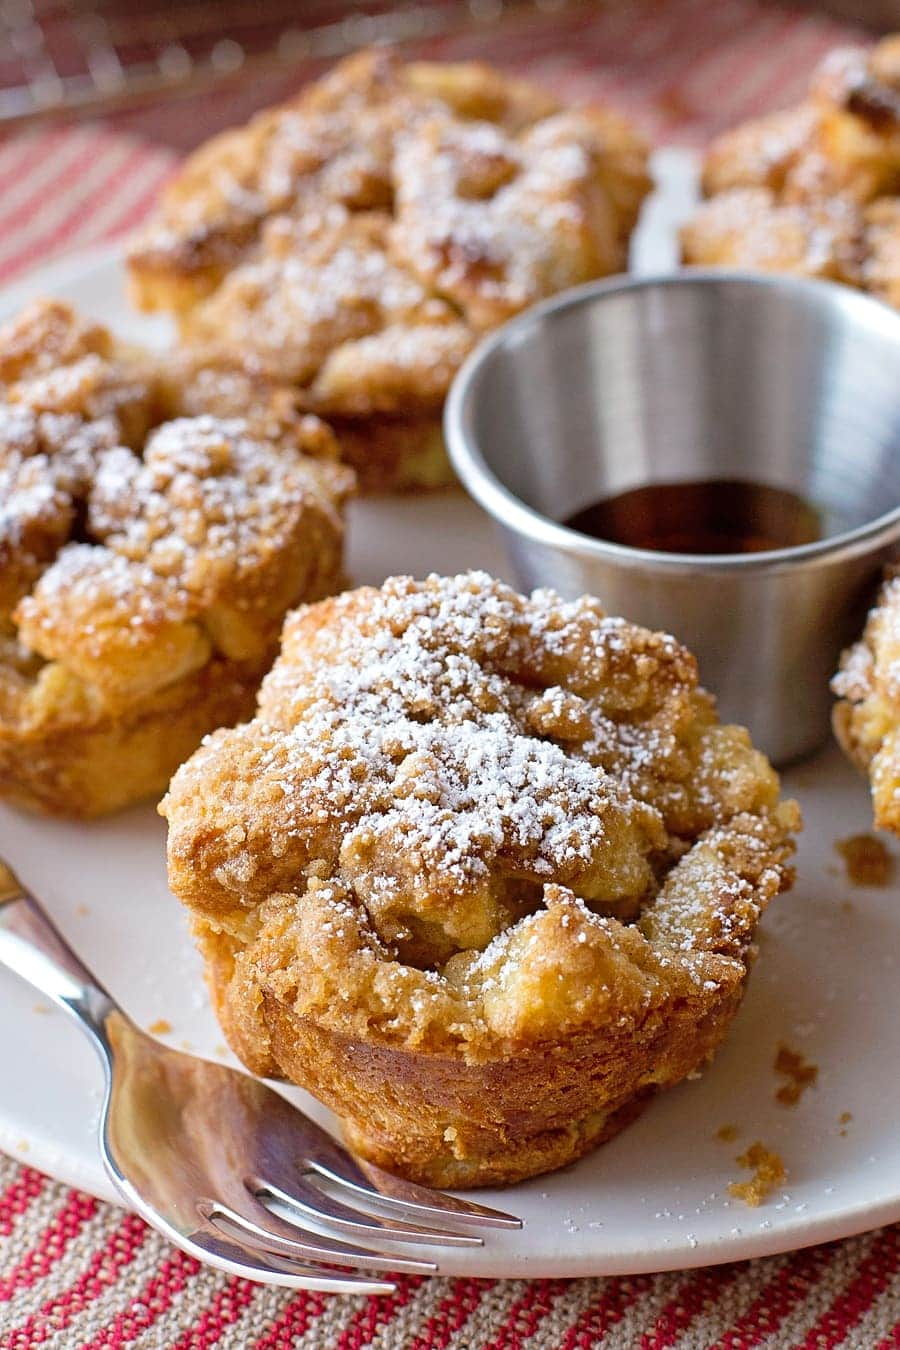 French Toast Muffins - easy to make, using things you already have in your pantry!! Your choice of bread, cubed and covered in egg and vanilla mixture, topped with a delicious sugary topping, and baked until golden and crispy. DELICIOUS!!